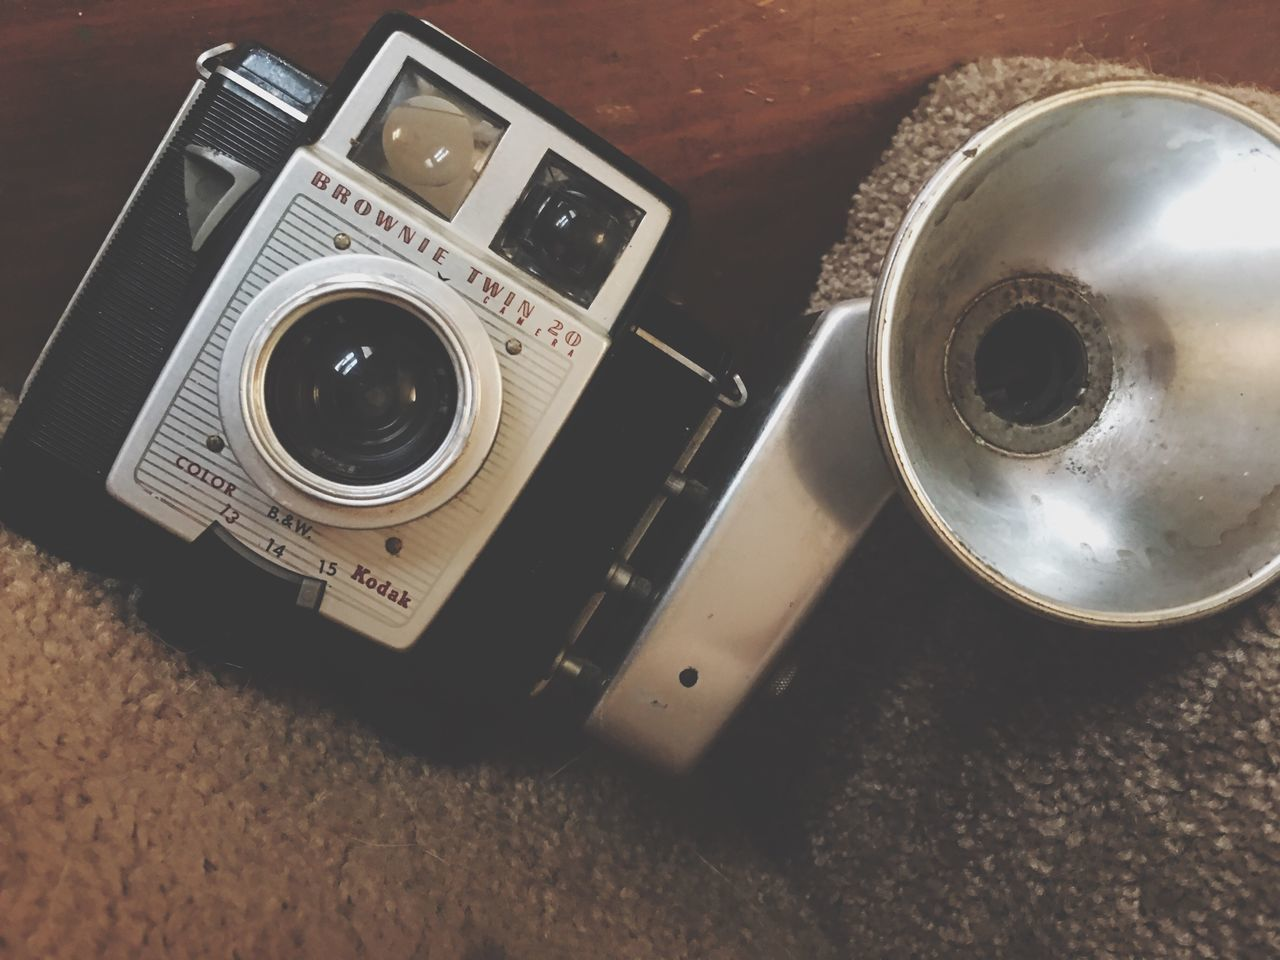 camera - photographic equipment, photography themes, still life, table, indoors, retro styled, close-up, no people, old-fashioned, technology, day